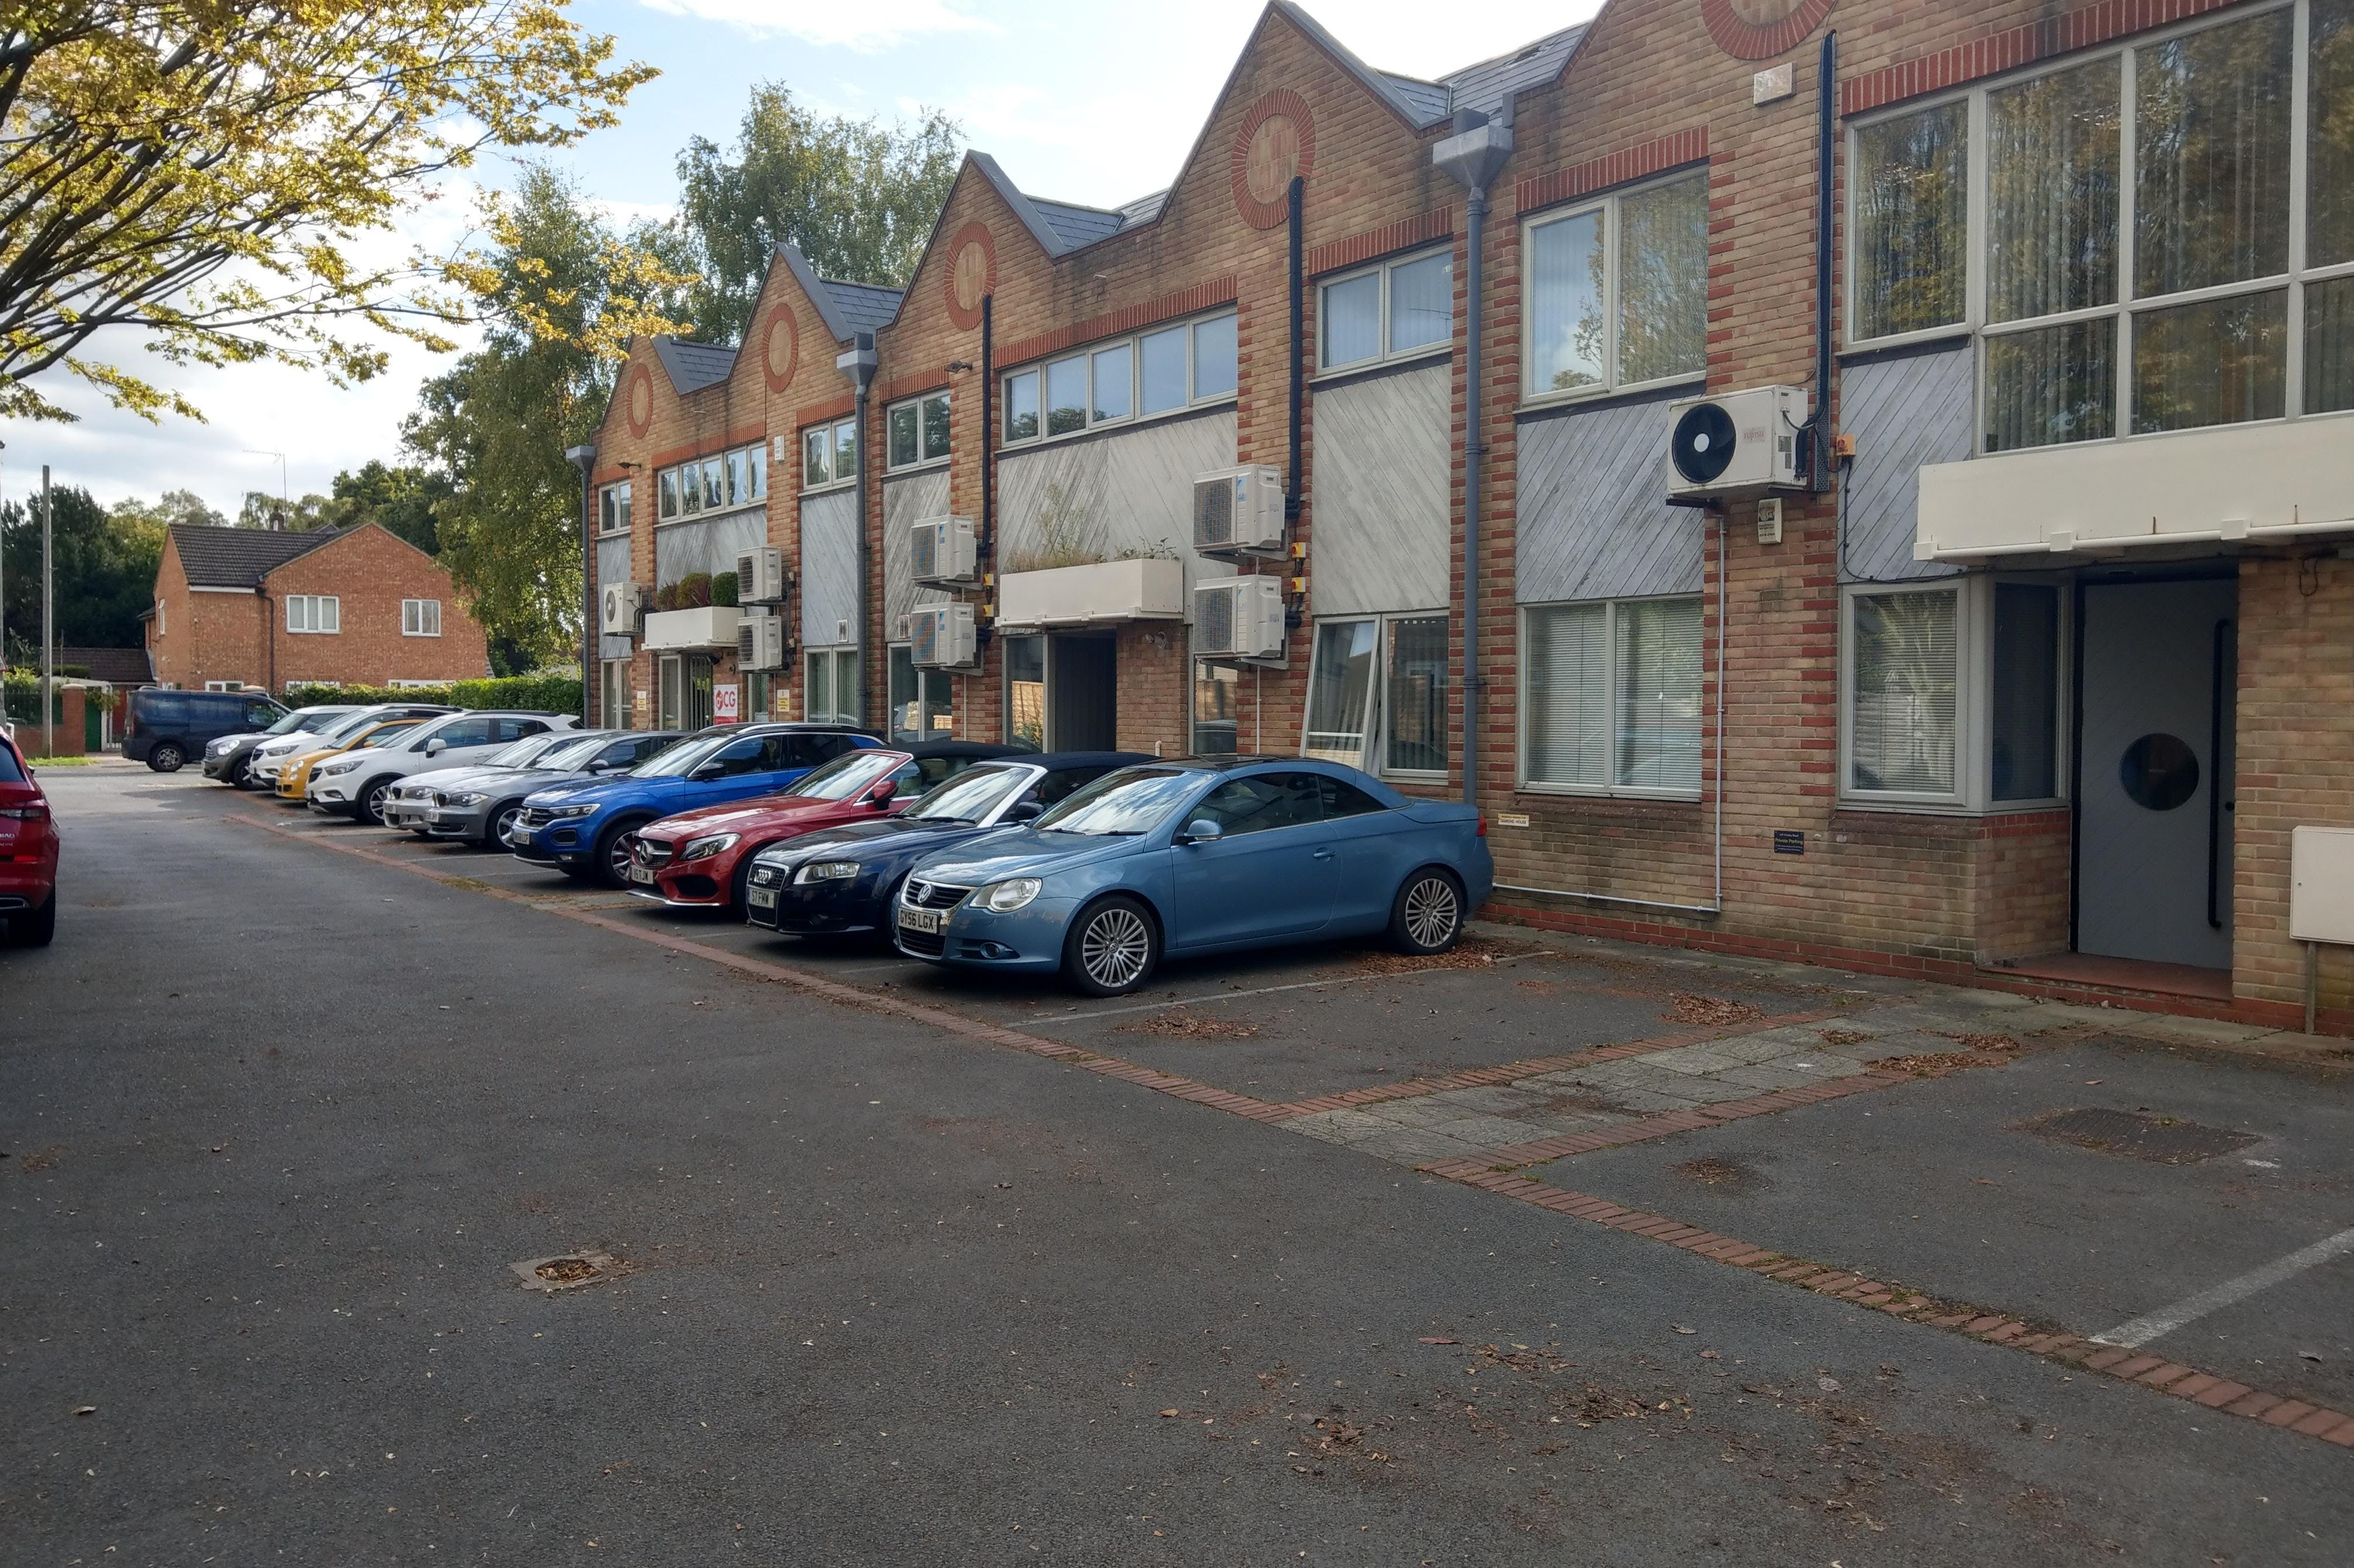 149 Frimley Road, Camberley, Offices To Let - IMAG1278.jpg